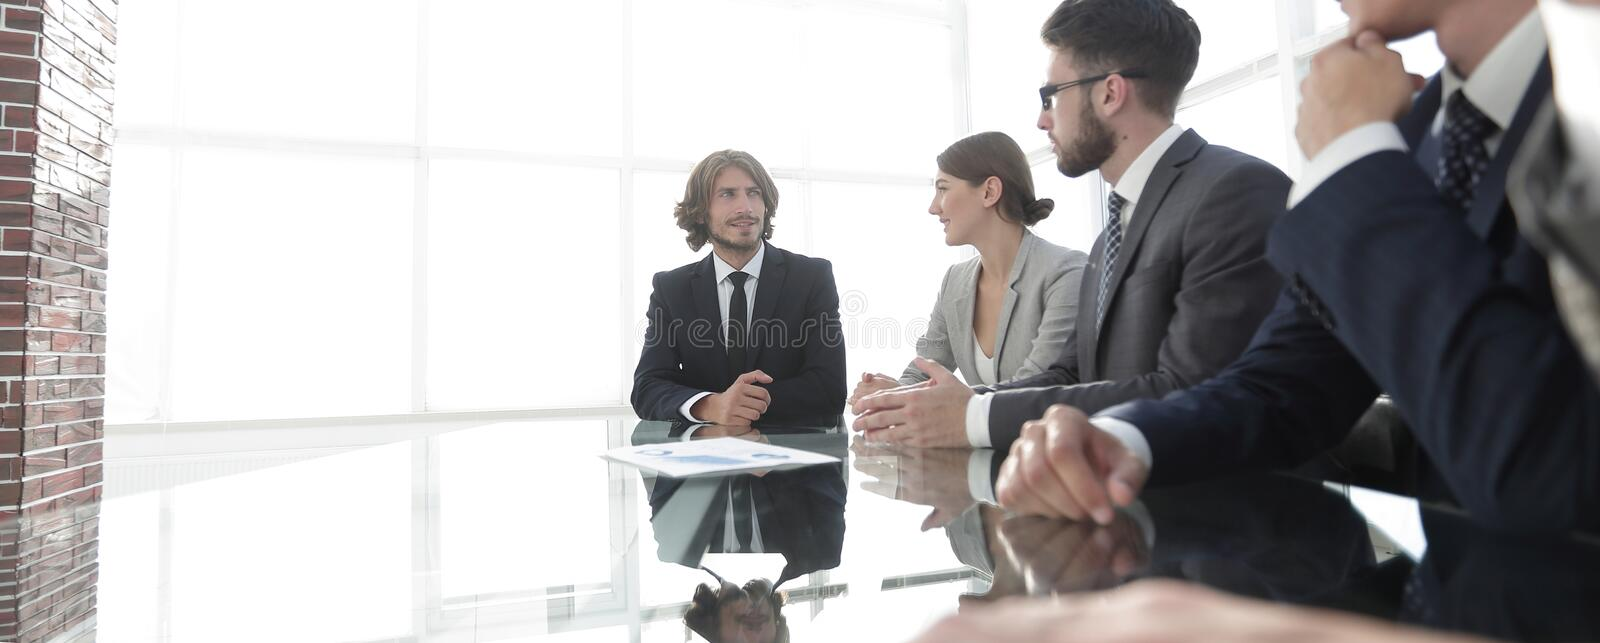 Meeting of business people. To discuss the corporate concept.photo with copy space stock image